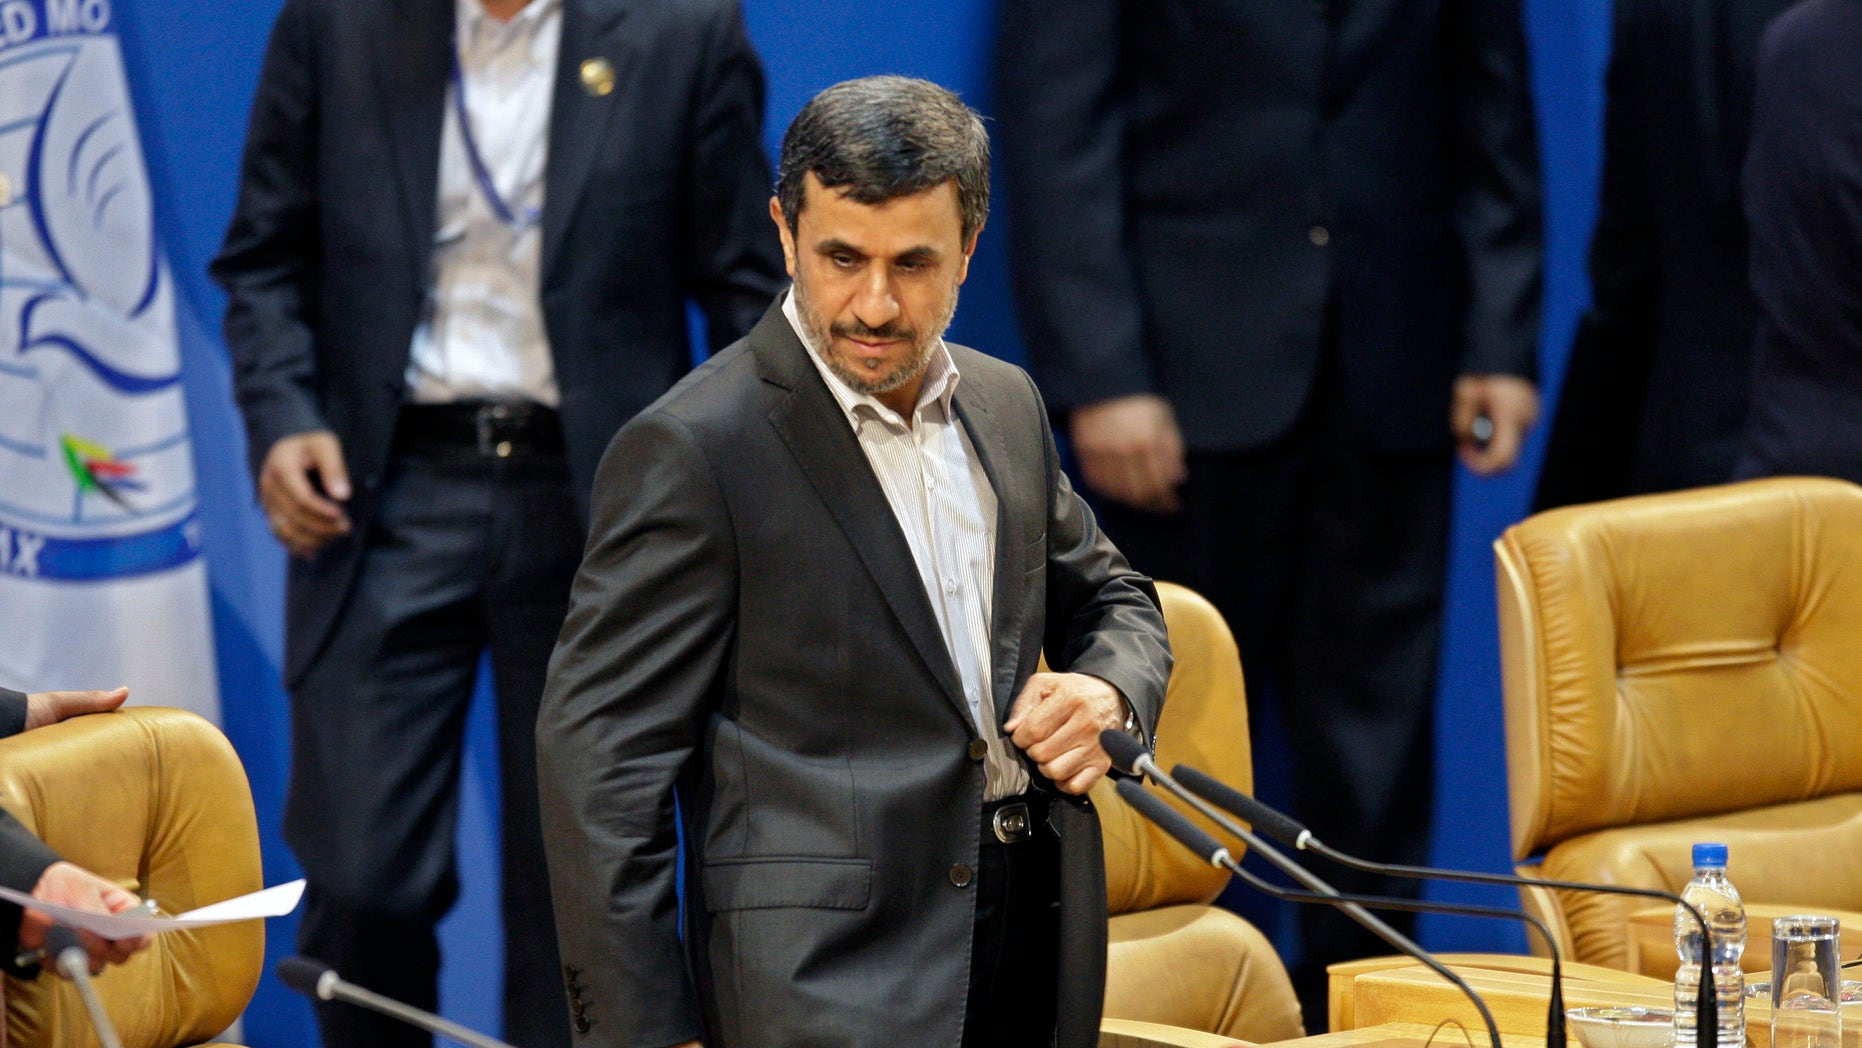 Iranian President Mahmoud Ahmadinejad takes his seat in the afternoon session of the Nonaligned Movement summit, in Tehran, Iran, Thursday, Aug. 30, 2012. (AP Photo/Vahid Salemi)